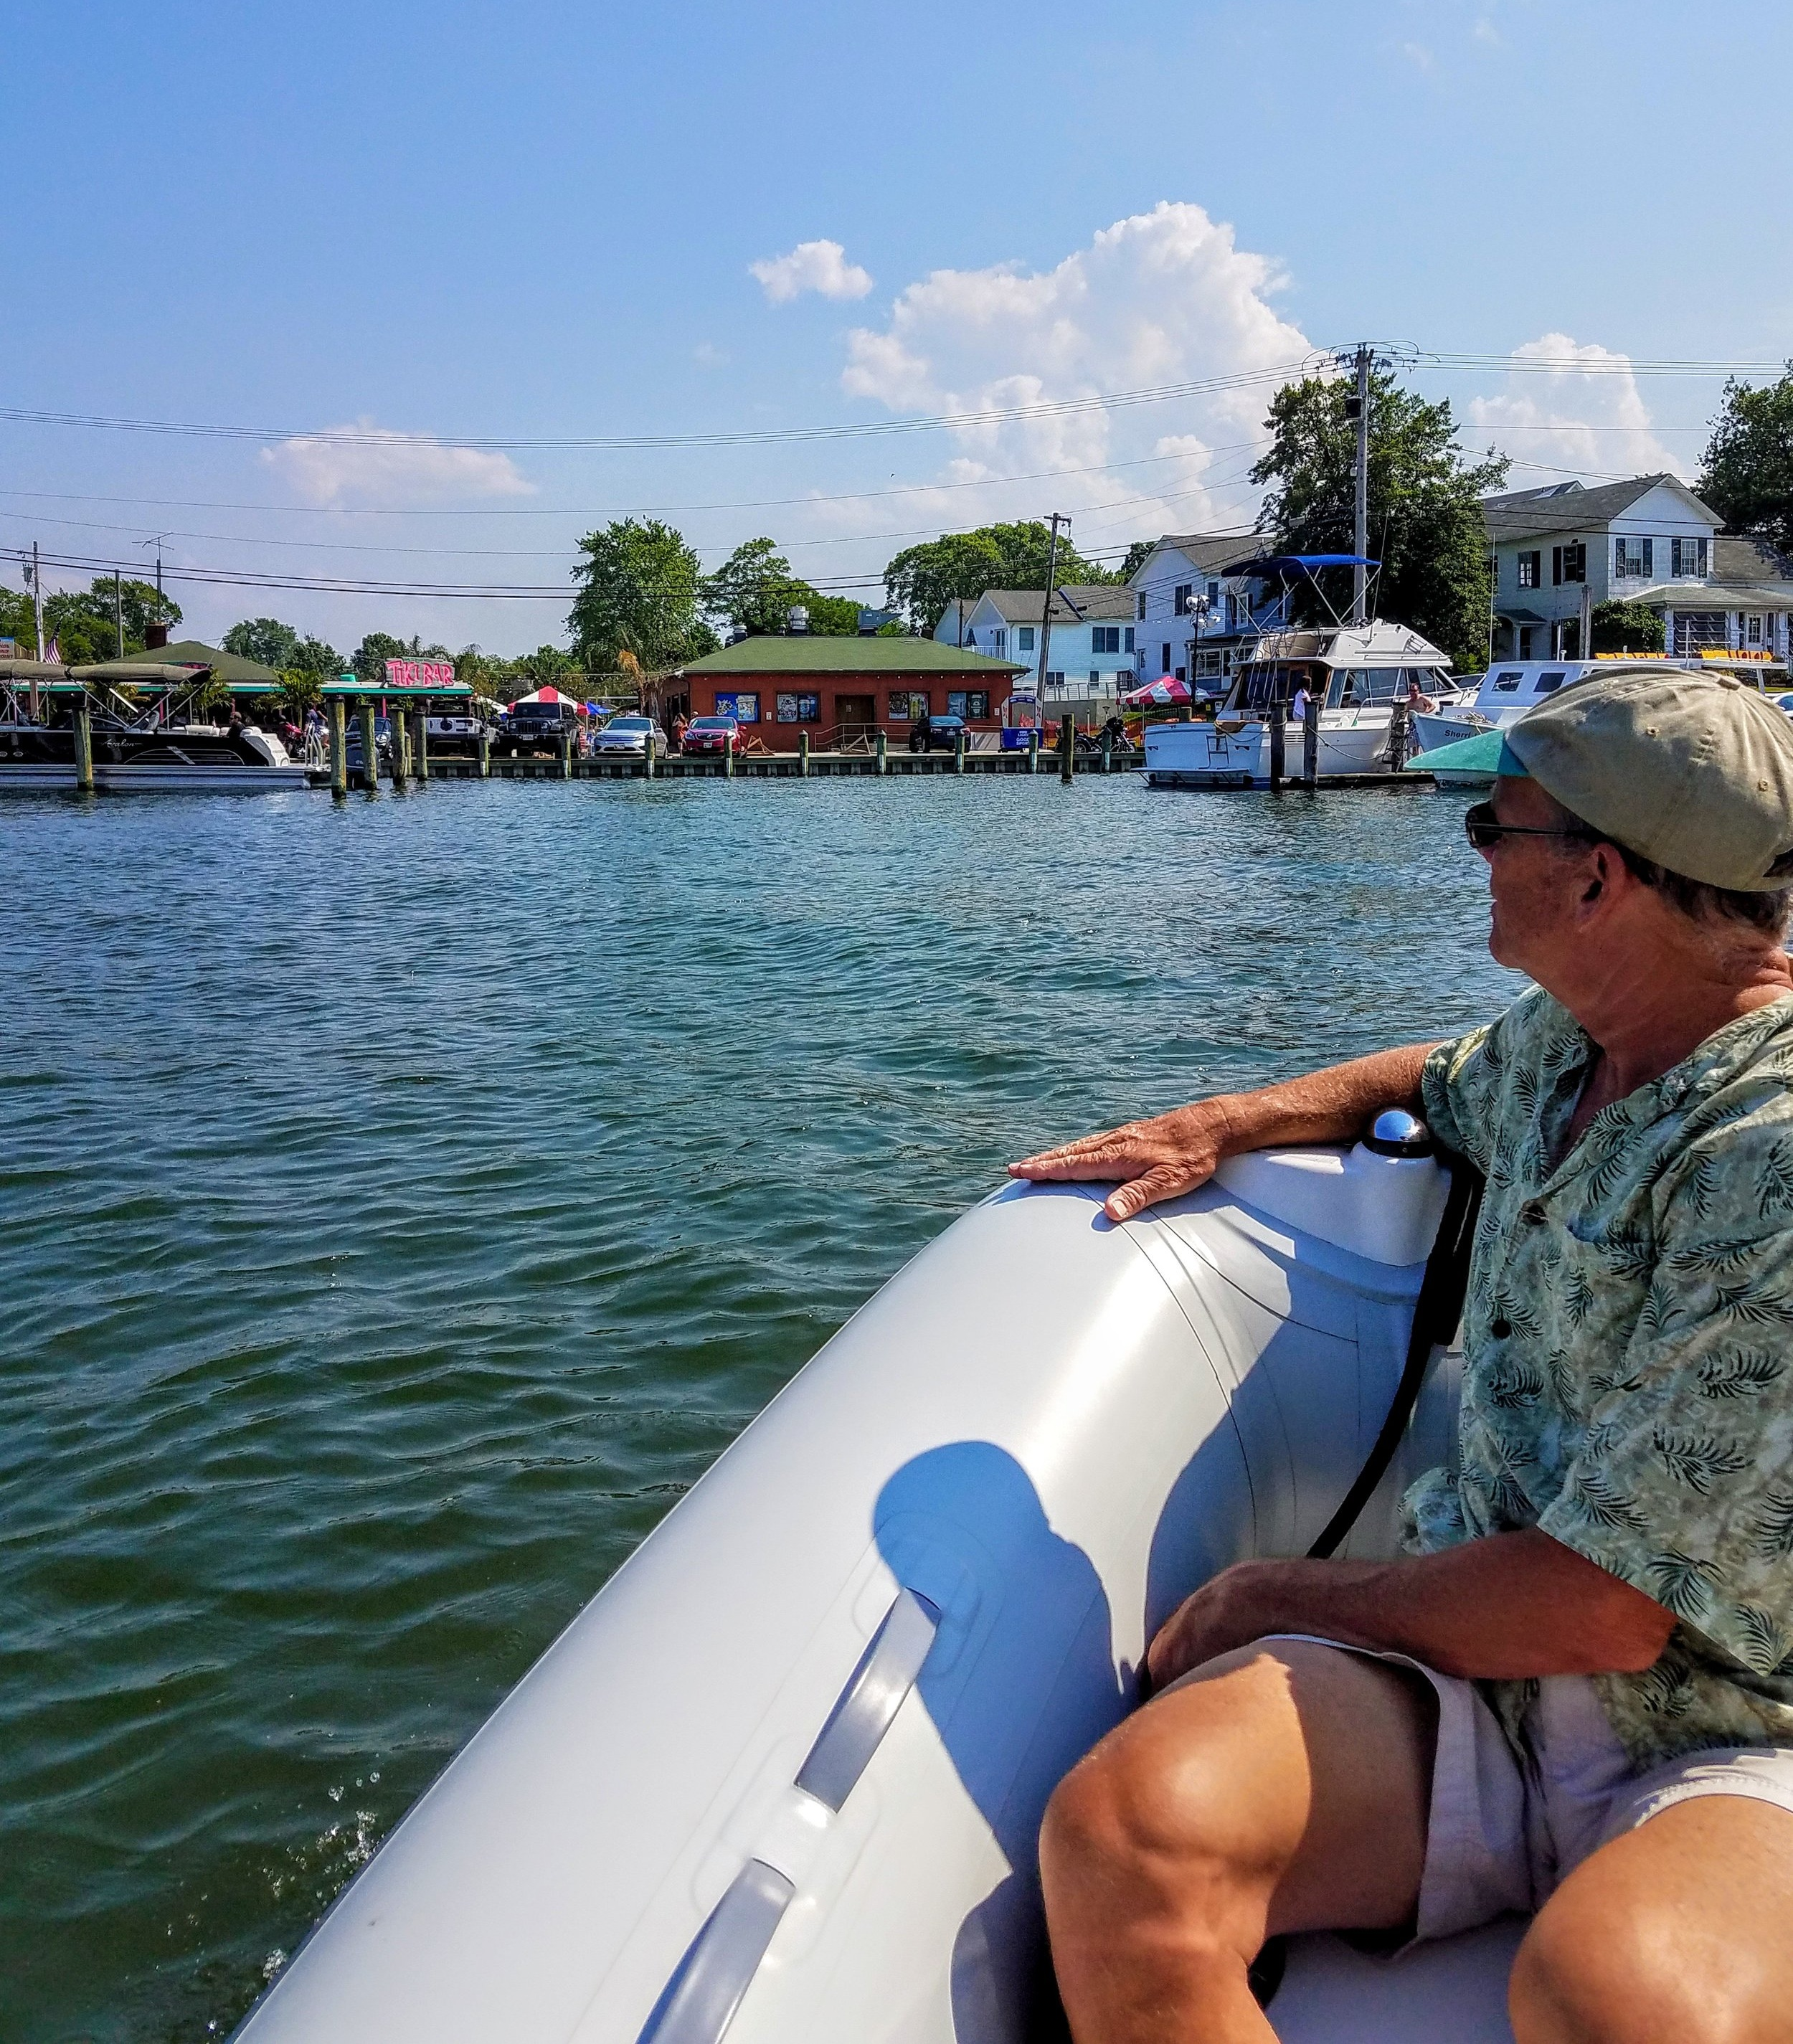 Taking the tender to the legendary 'Tiki Bar' of Solomons Island.